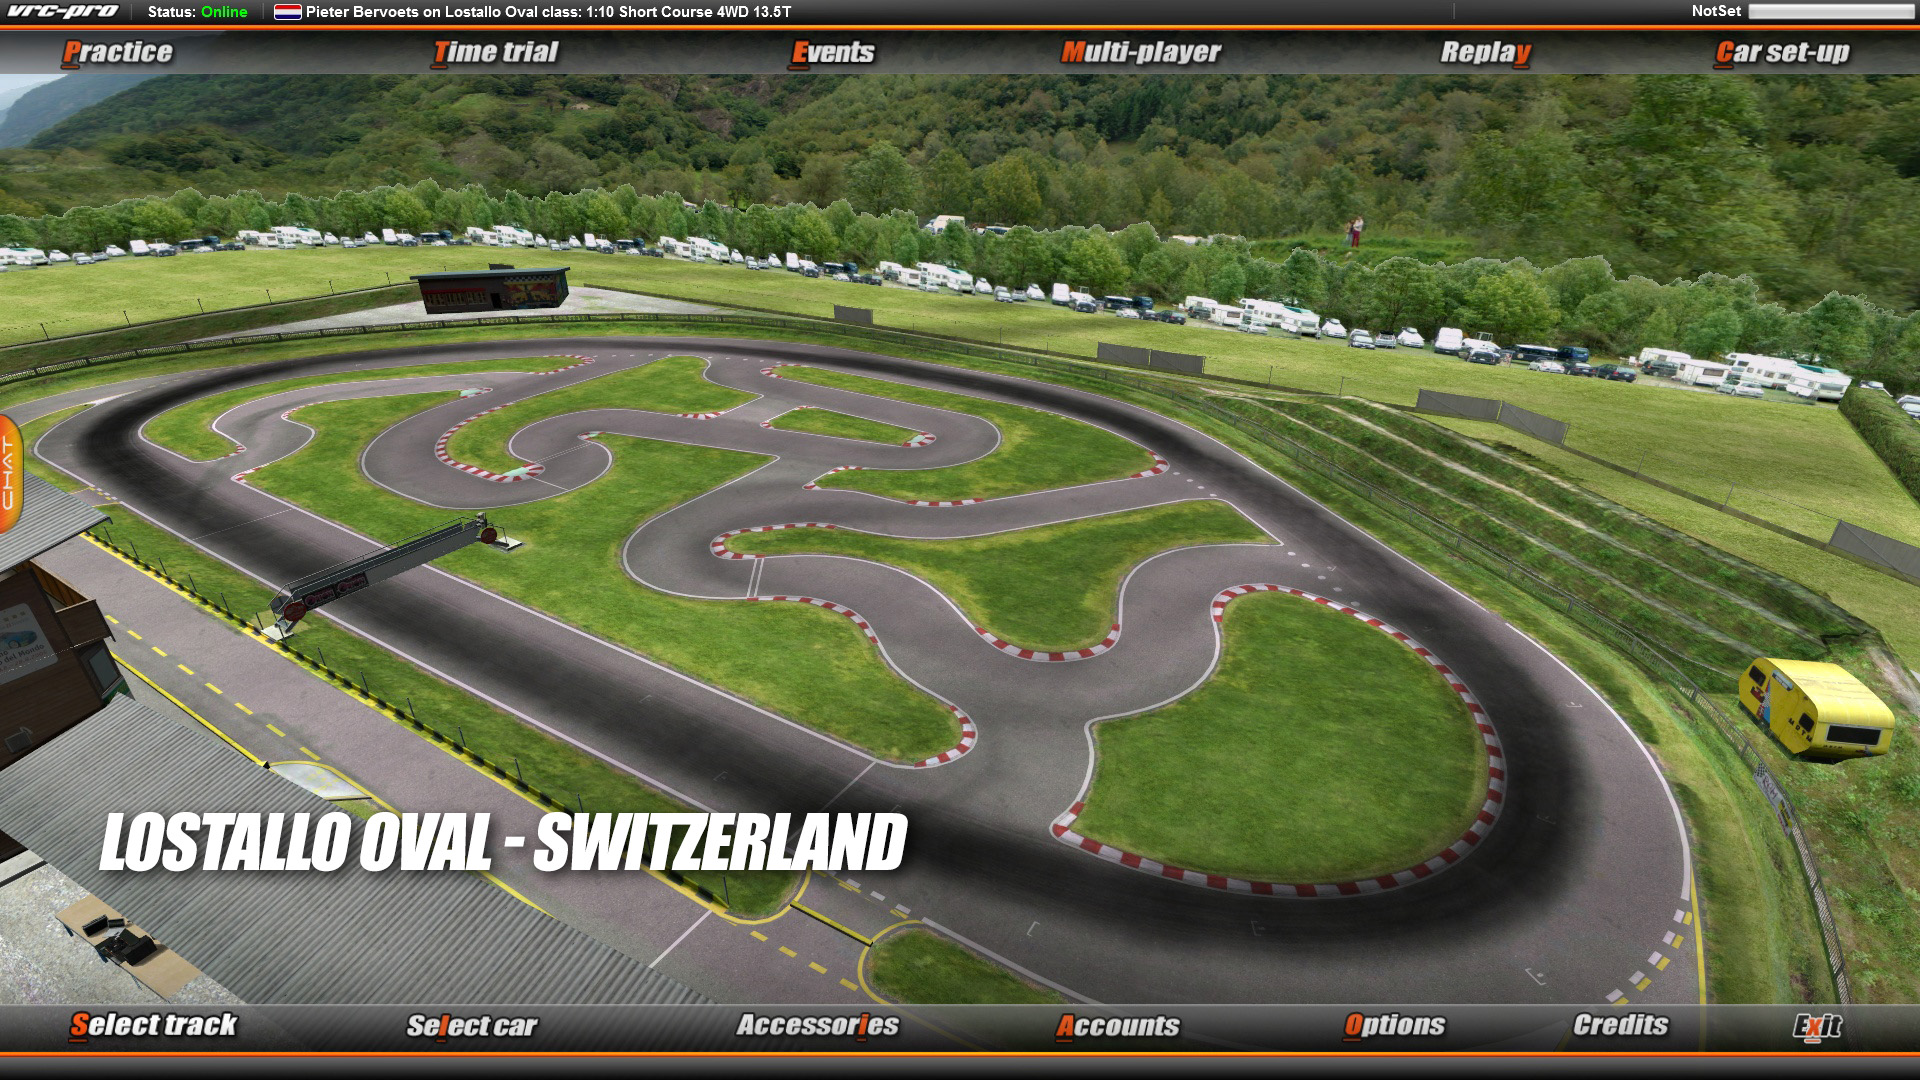 VRC PRO International Oval On-road tracks Deluxe screenshot